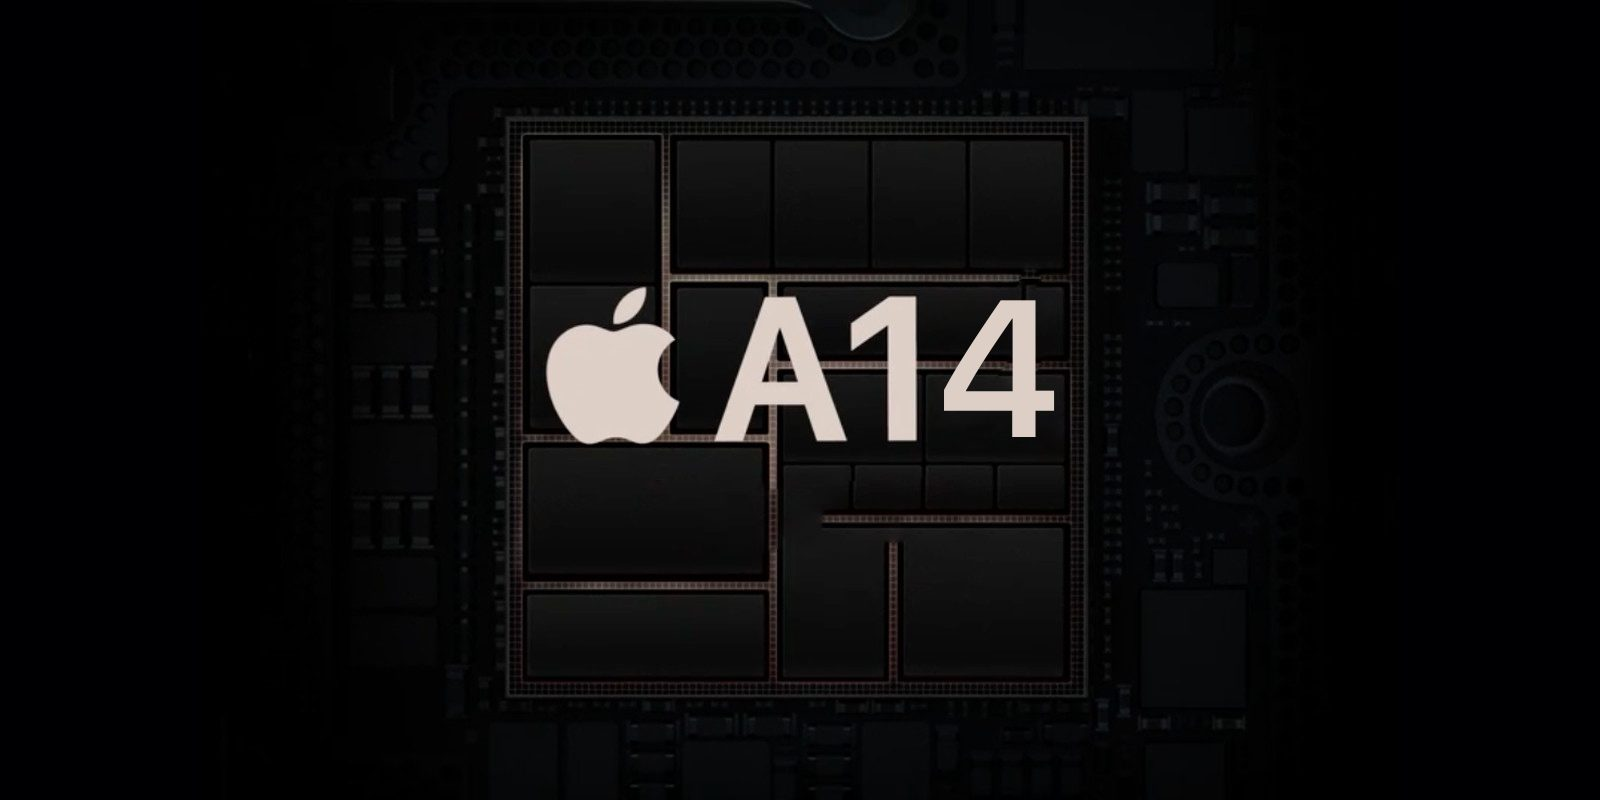 Apple iPhone 12 A14 Bionic Chip Performance